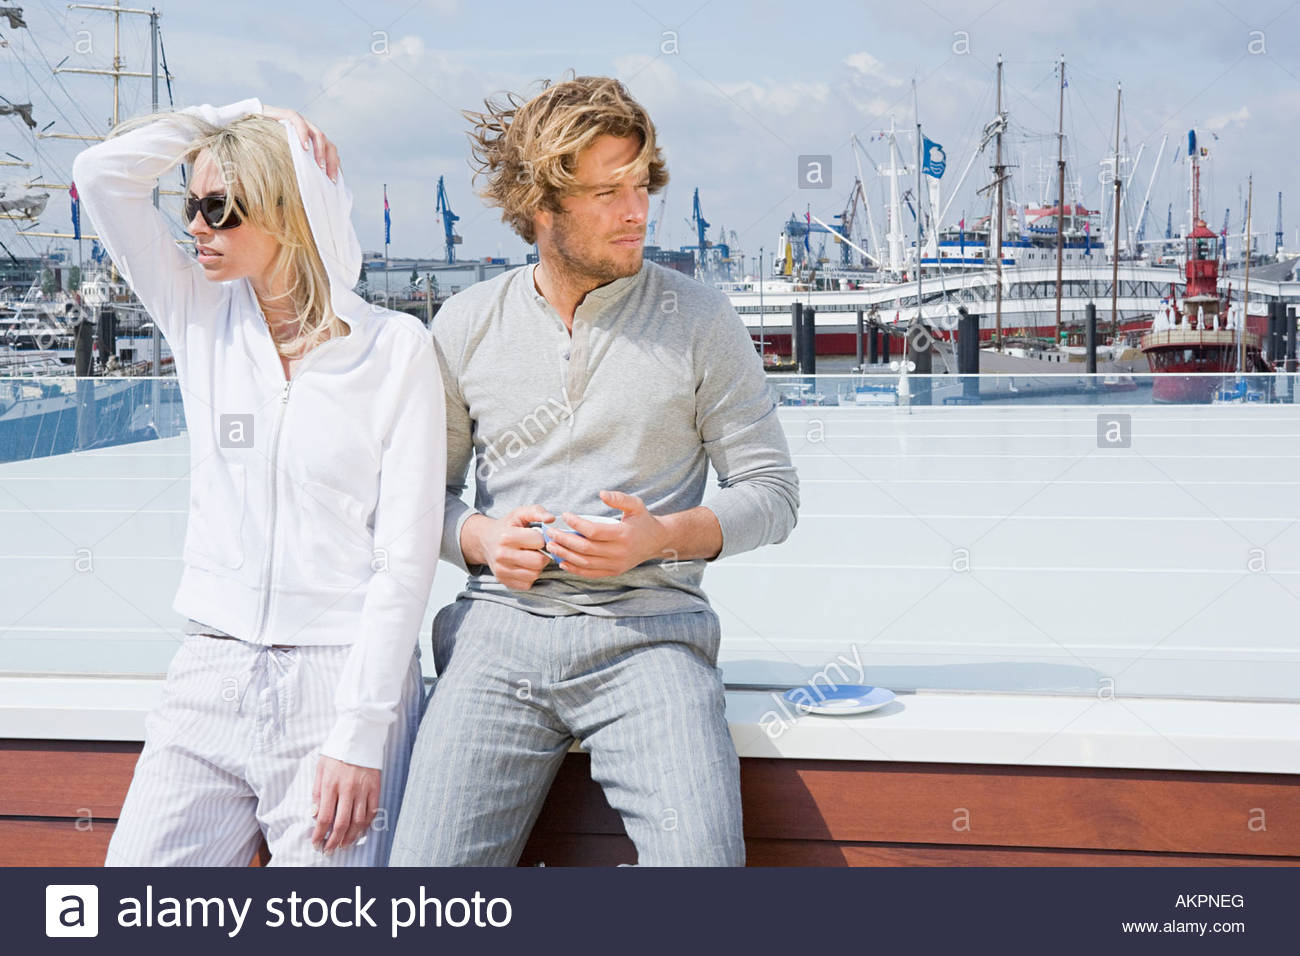 Couple at harbour - Stock Image